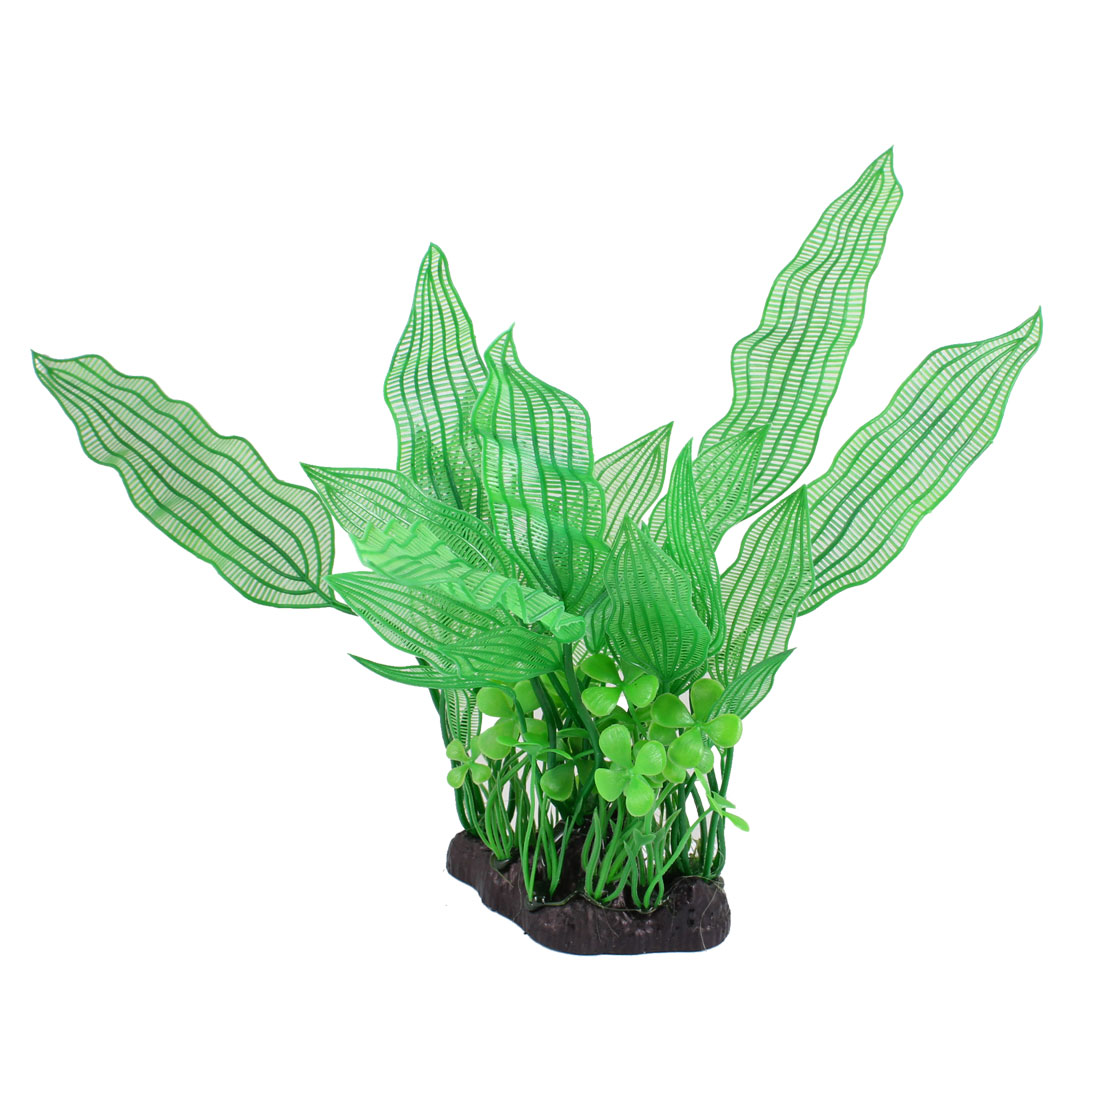 "11.8"" Height Green Leaves Fish Tank Aquarium Plastic Simulation Plant Decor"